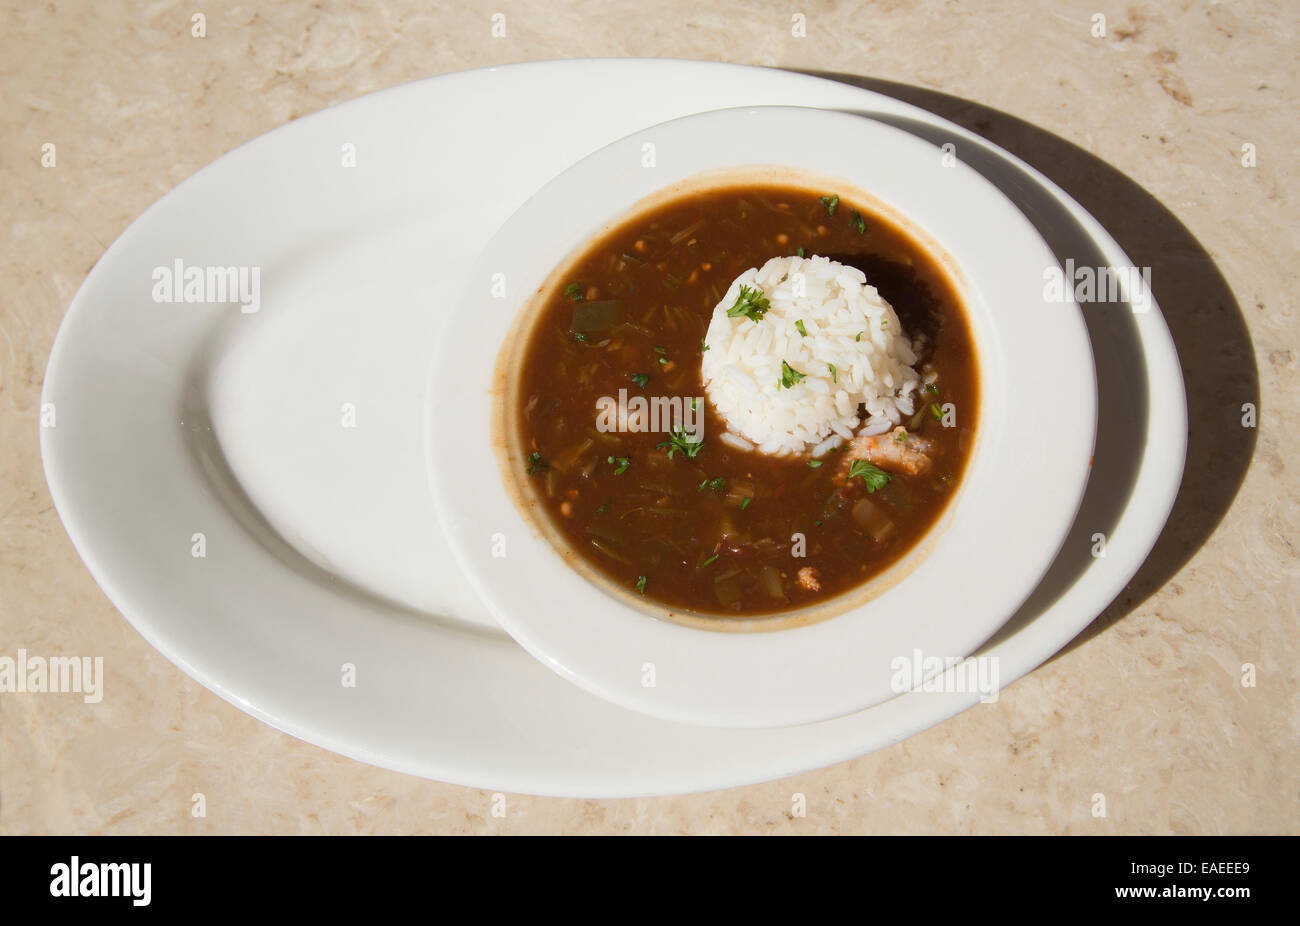 Creole cuisine Gumbo soup with rice New Orleans USA - Stock Image